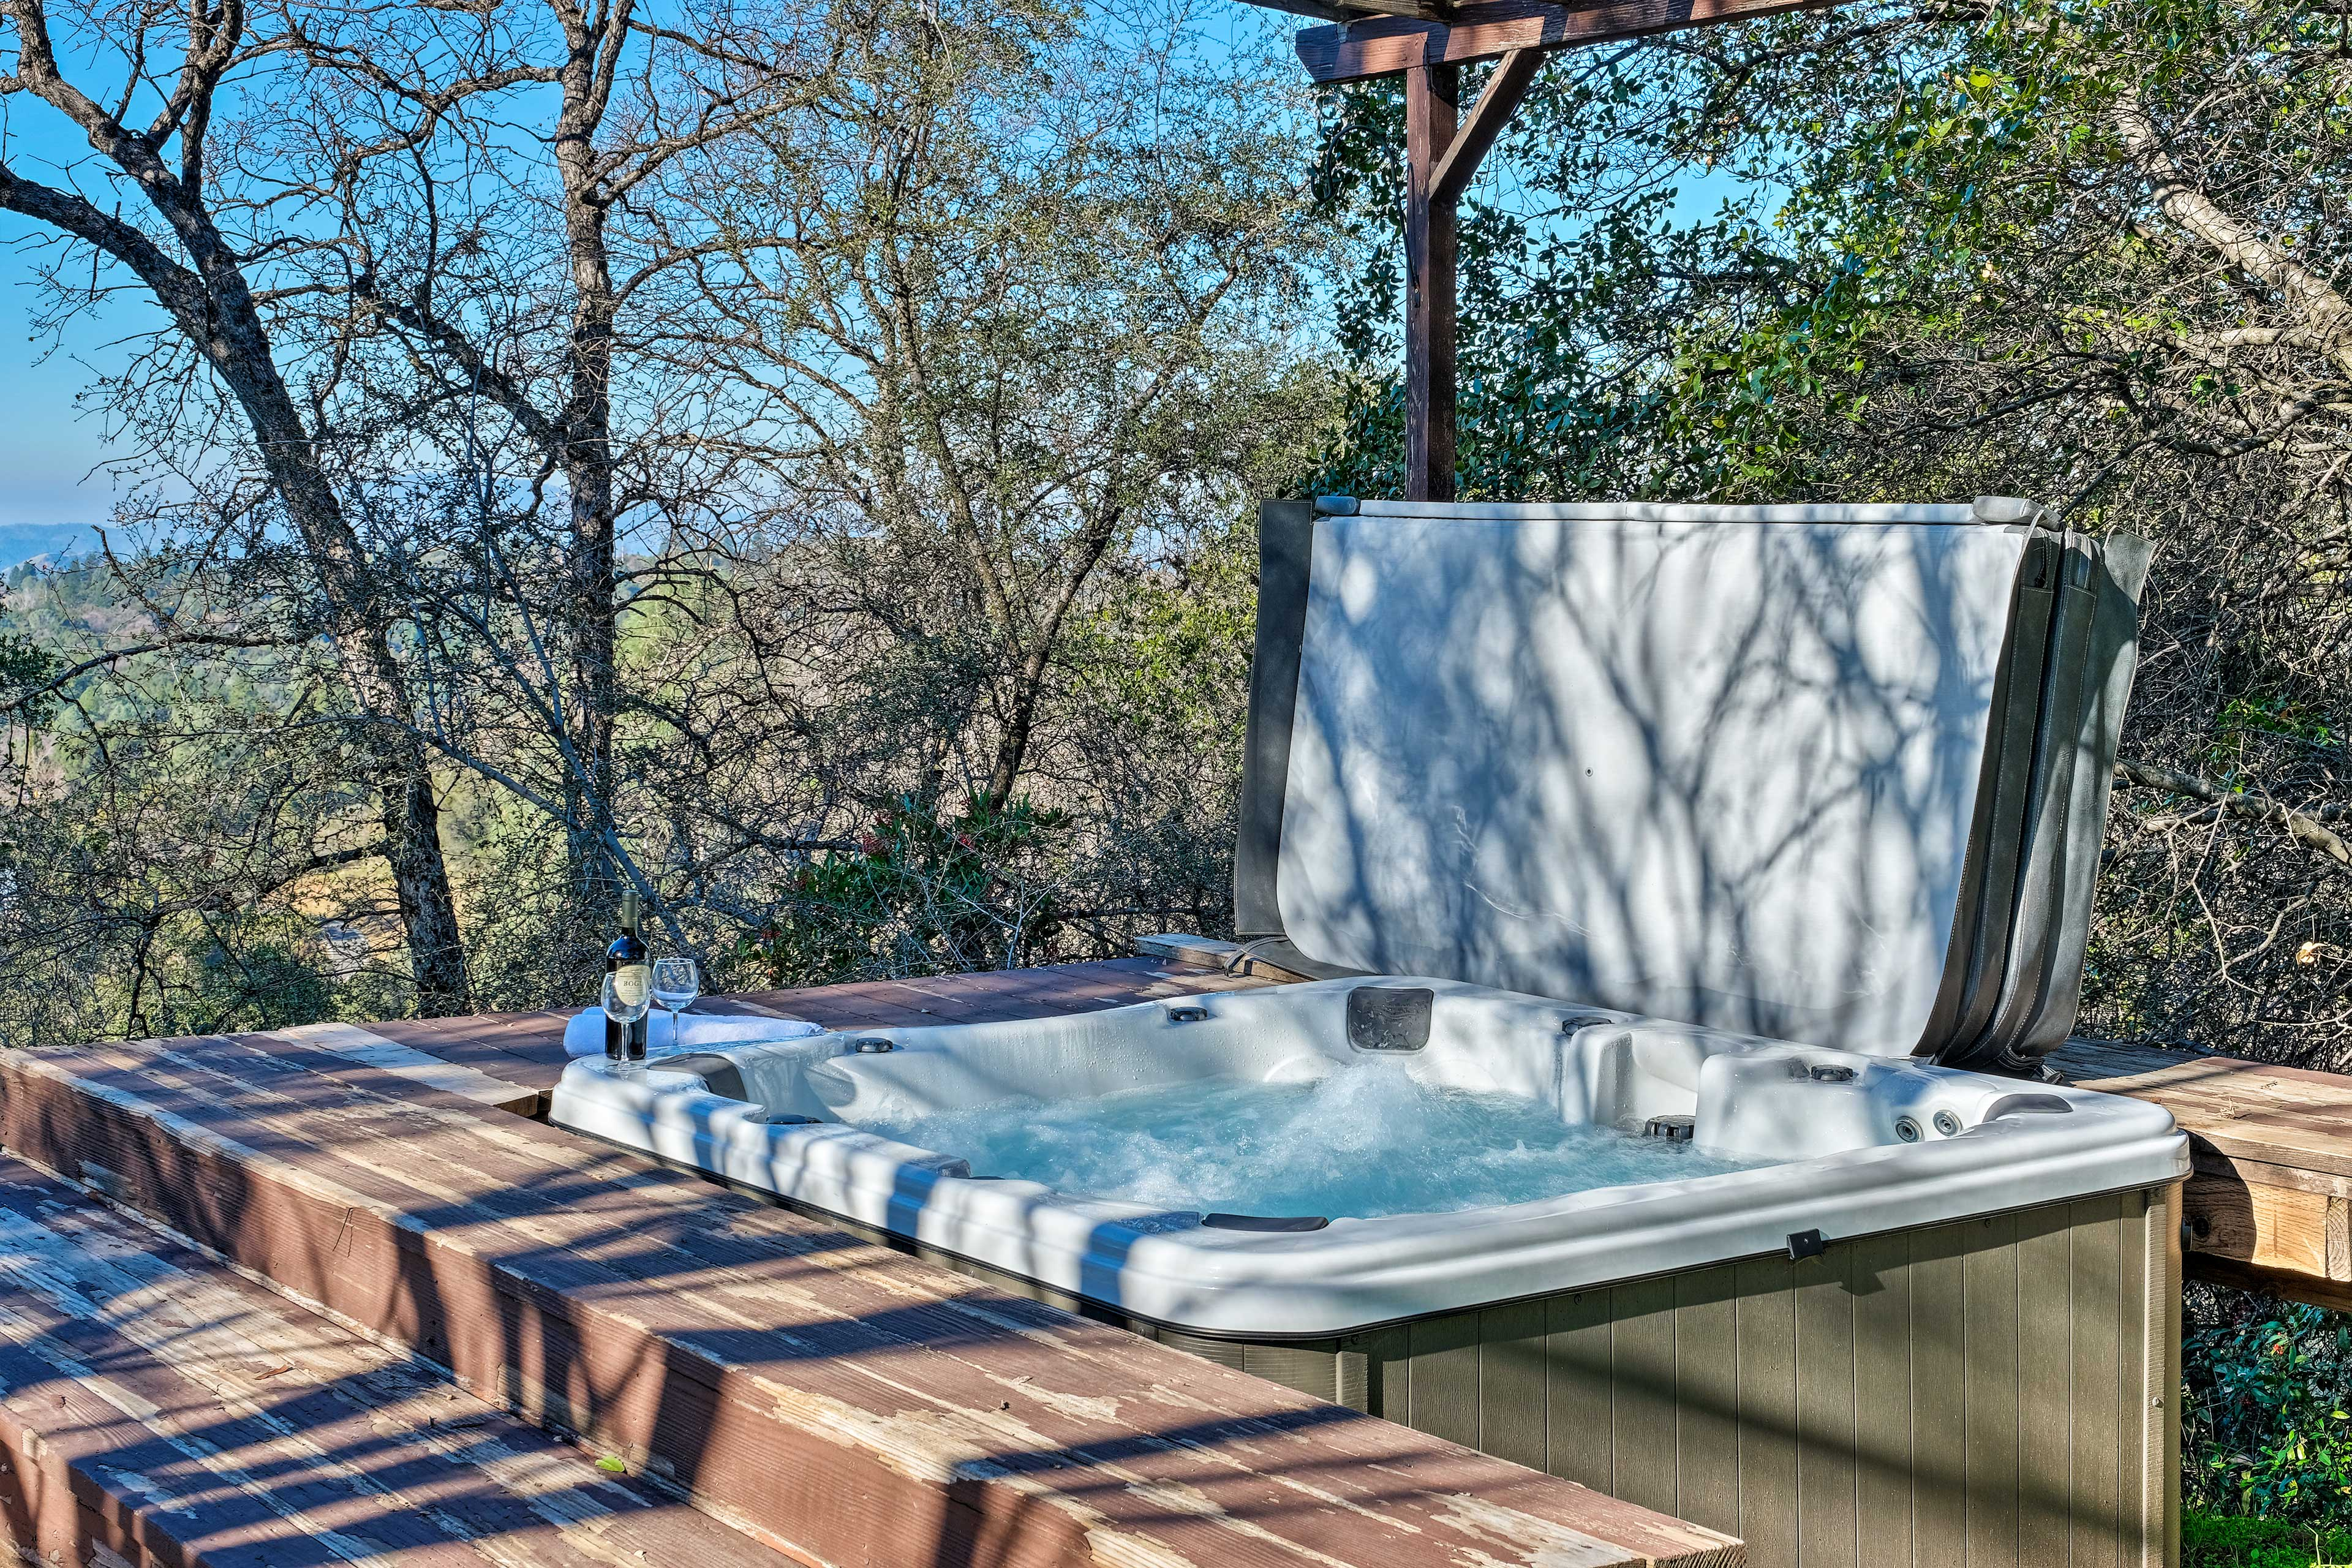 Soak sore hiking muscles in the home's private hot tub.